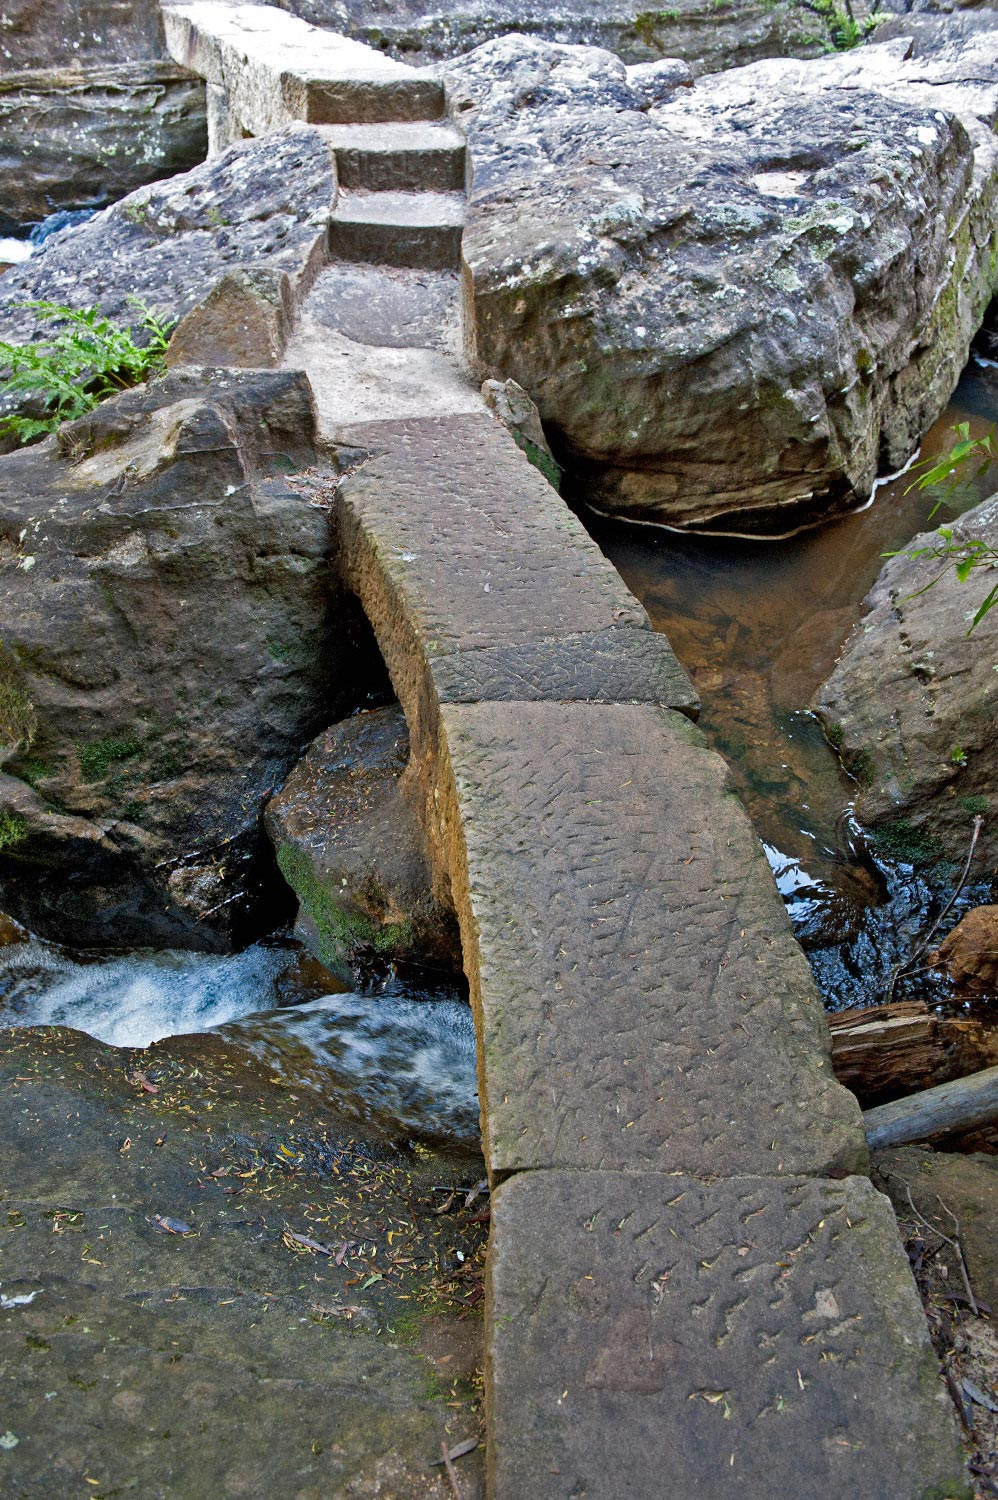 Warren-Hinder-LR-Sandstone-Bridge-National-pass.jpg